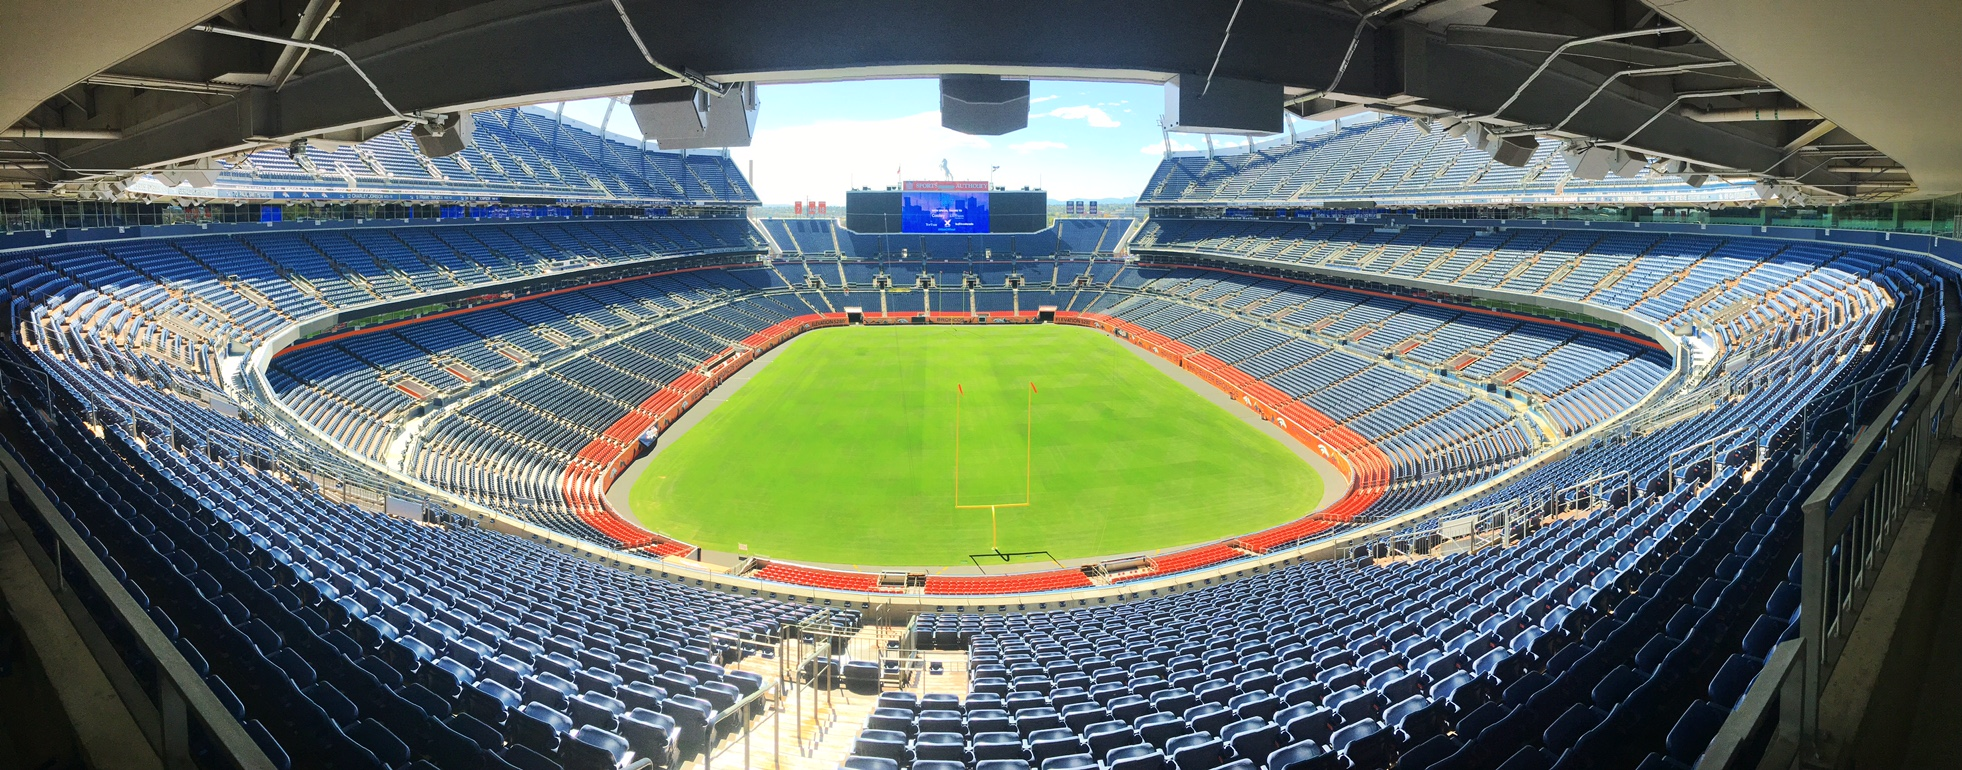 The tour stopped for lunch at the Bronco's stadium.